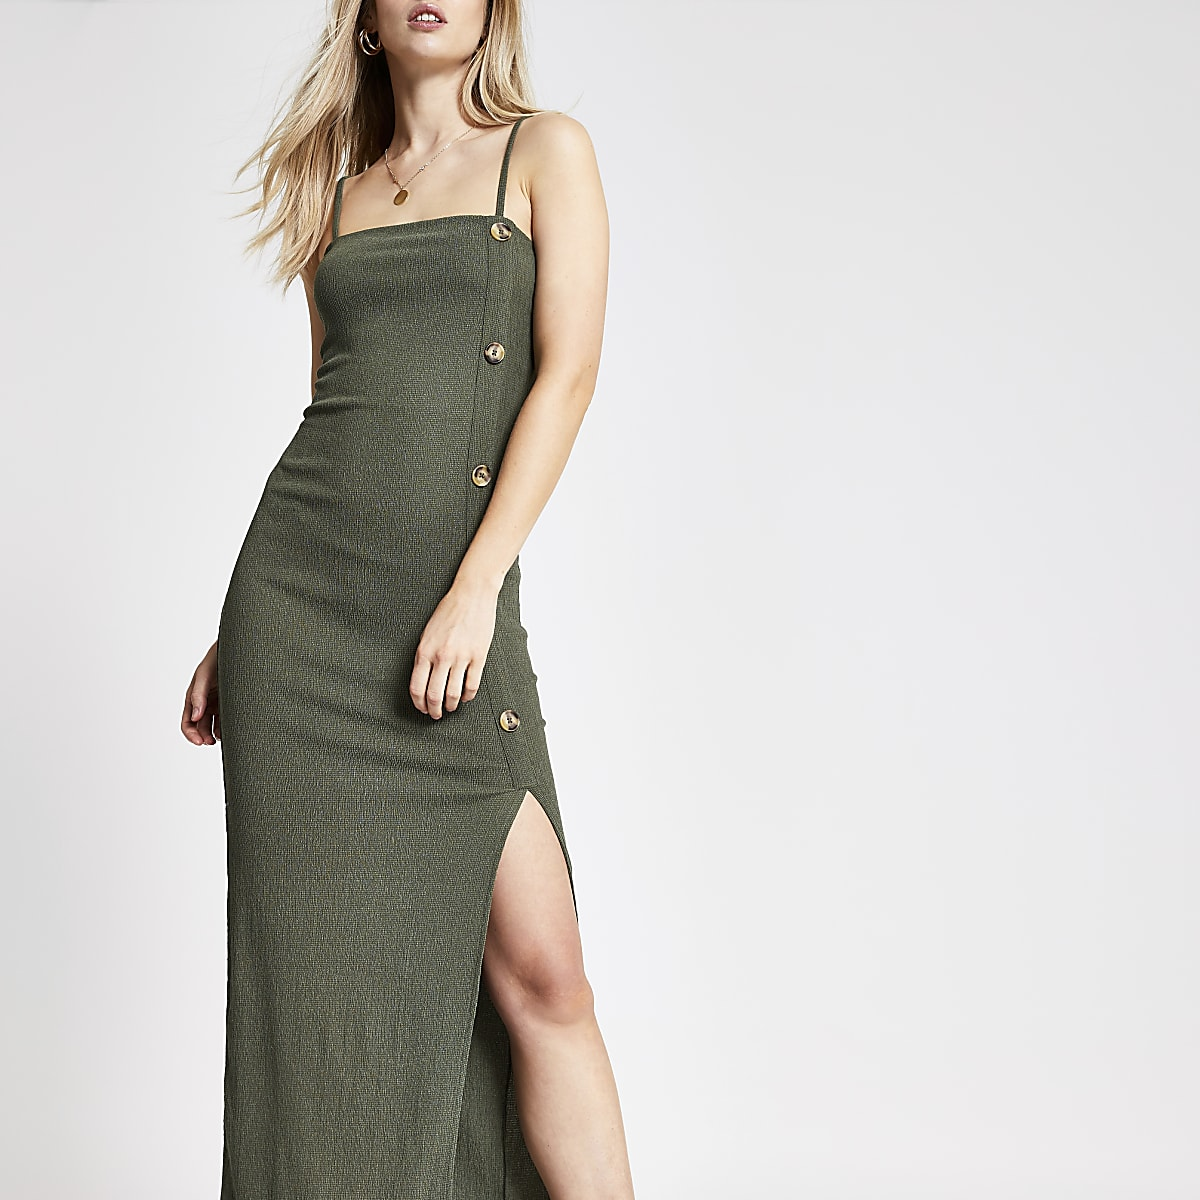 Kaki maxi-slipdress